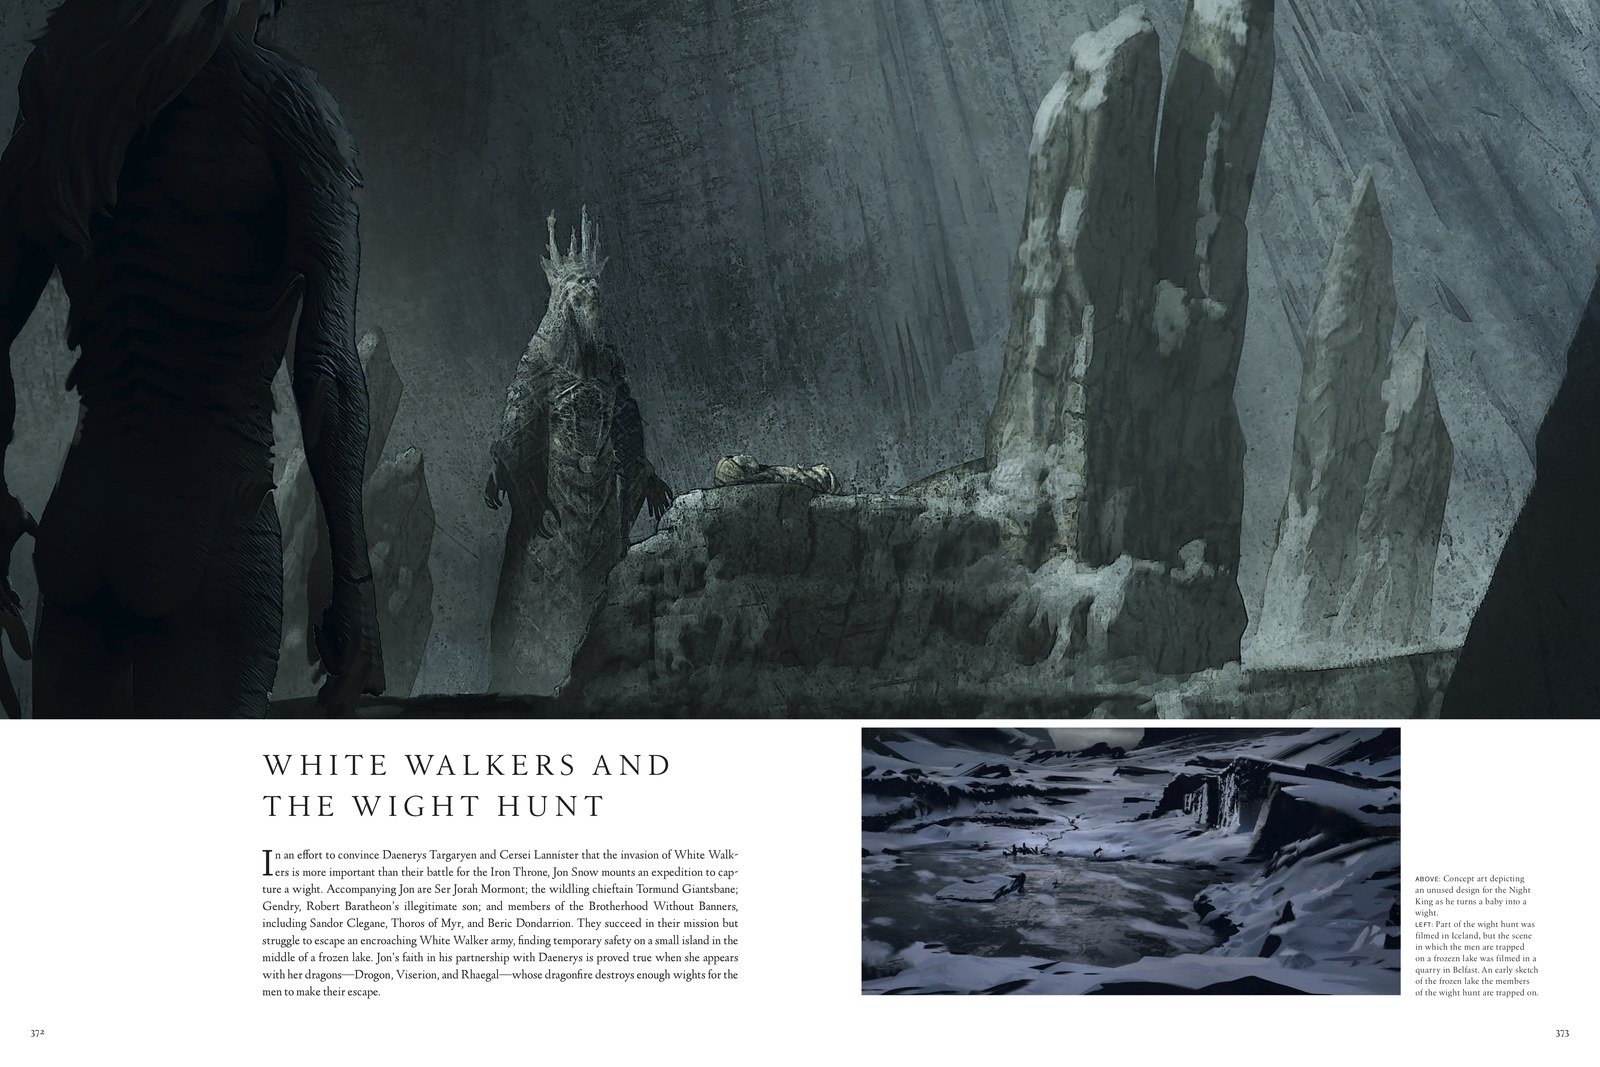 Game Of Thrones Concept Art Reveals Very Different Look For